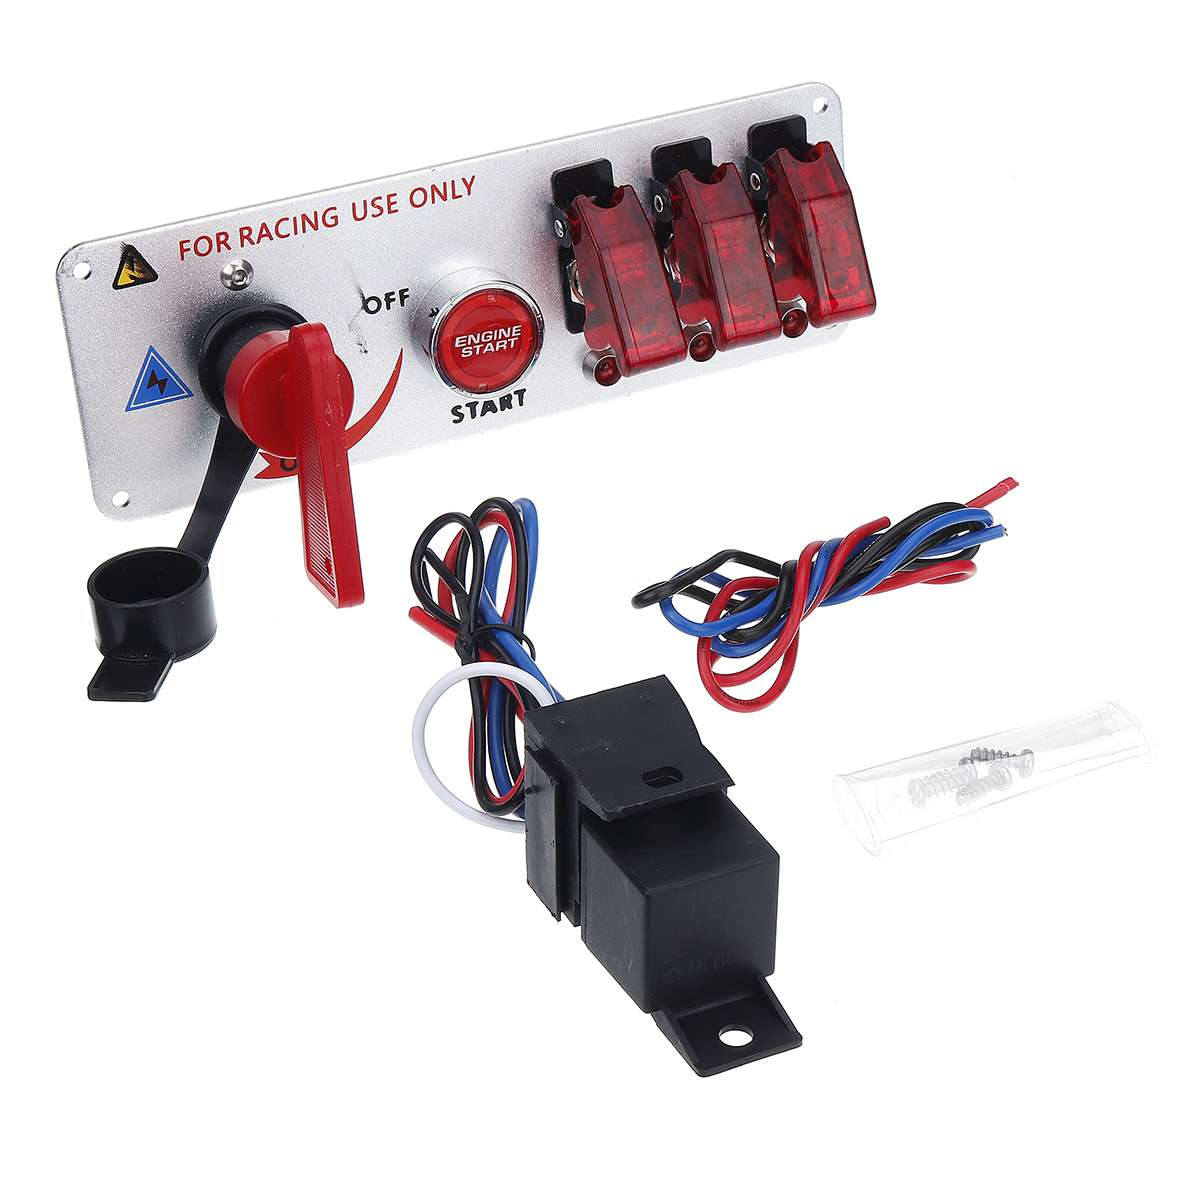 Jtron DC12V Racing Car Ignition Switch Panel Carbon Fiber Rocking Switch+Engine Start Push Button With Indicator Light Red